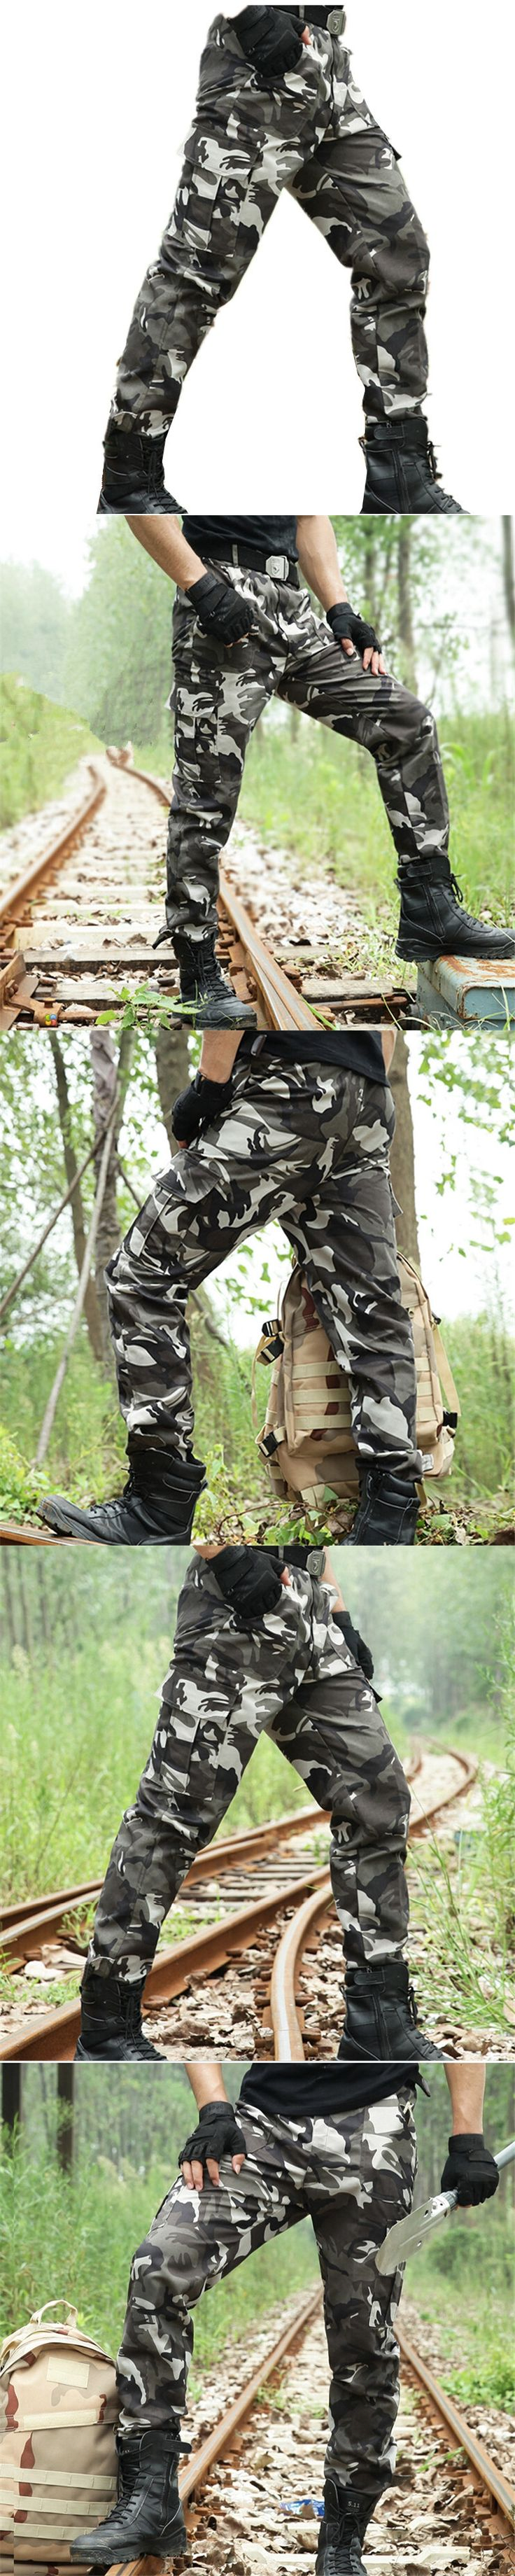 Army Camouflage Pants Tactical cargo Military Men's Combat Multi-Pockets Utility Casual Full Length Work Trousers & Sweatpants